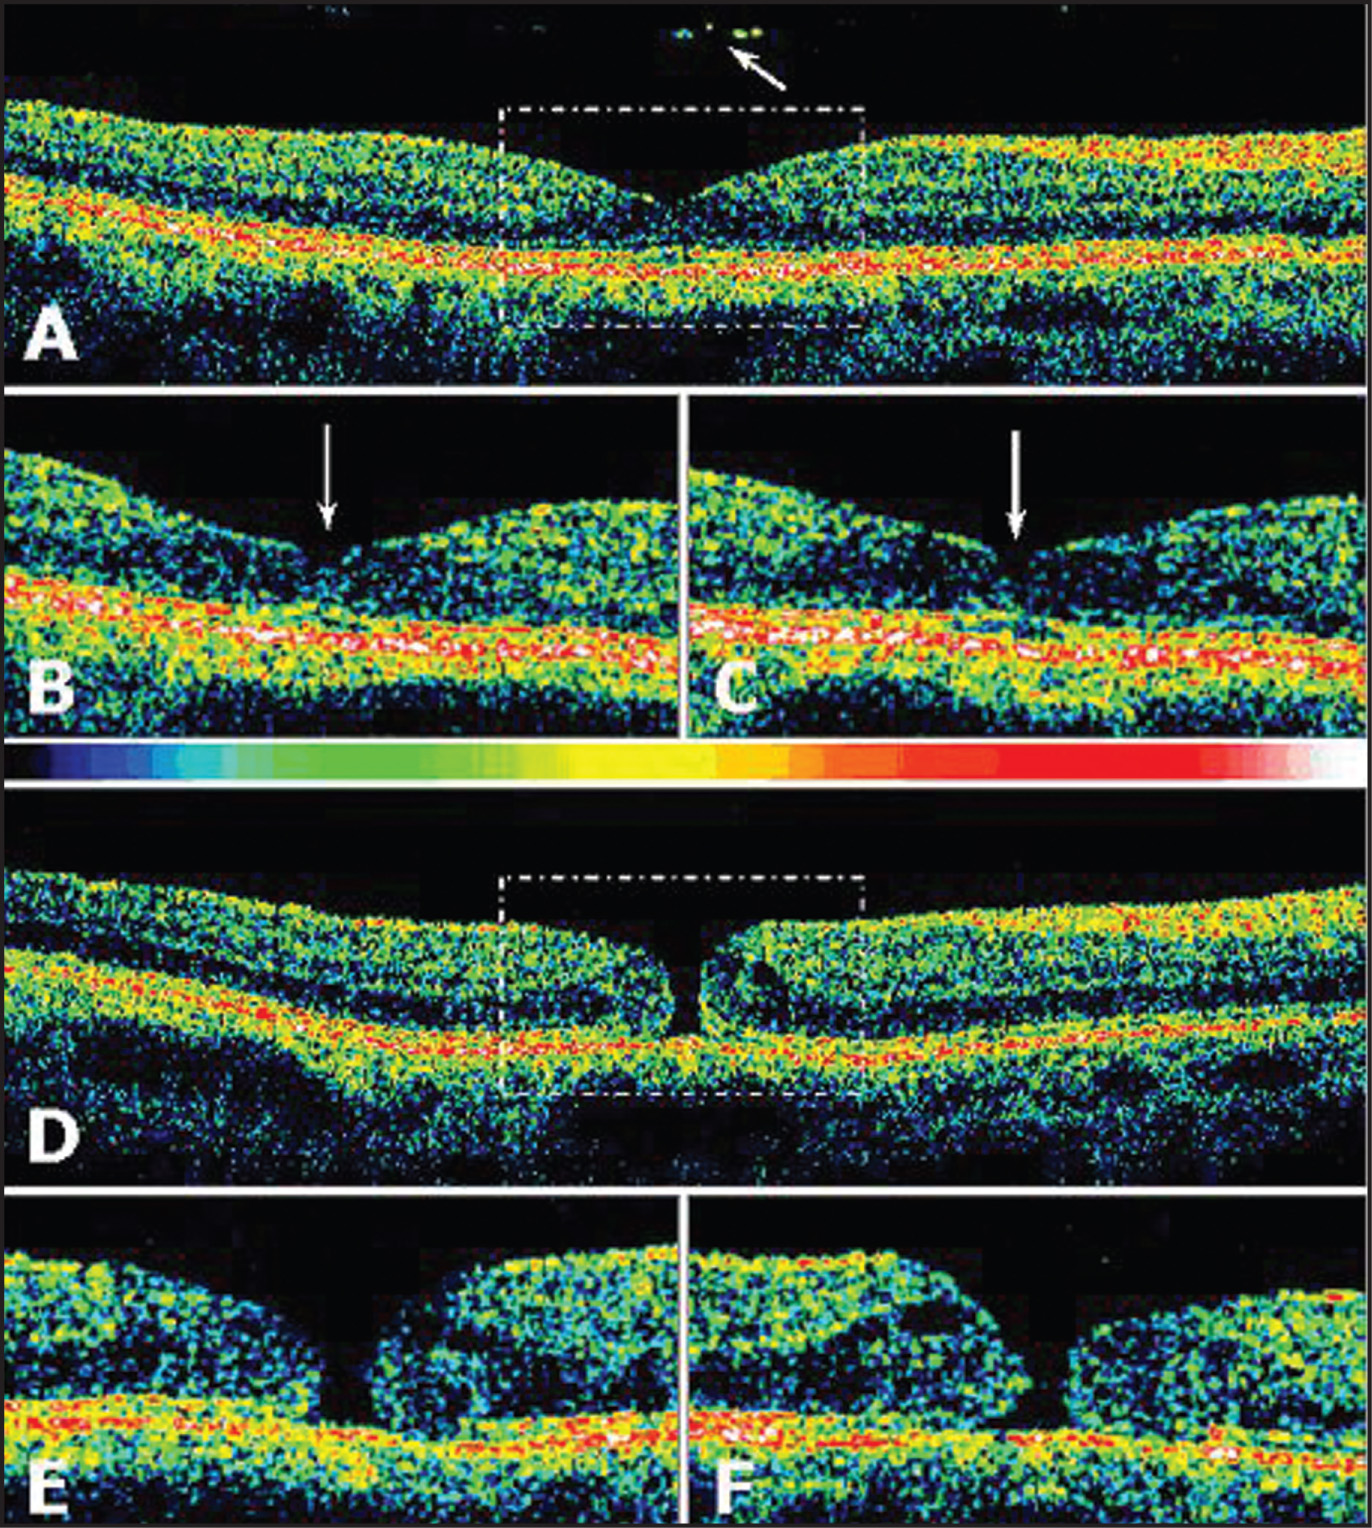 Third Generation Optical Coherence Tomography Scan of the Left Eye of a 57-Year-Old Woman with Idiopathic Age-Related Macular Hole in the Right Eye (case 1). (A) at Presentation, an Epiretinal Membrane (grade 2) and a Full-Thickness Macular Hole (Gaudric Stage 3) Were Seen in the Patient's Right Eye (data not Shown). a Horizontal (6 mm in Length) Scan of the Left Eye Revealed Complete Detachment of the Posterior Hyaloid in the Macular Region with Hyperreflective Signals in the Plane of the Detached Posterior Hyaloid over the Foveal Region (arrow). (B, C) Oblique (4 mm in Length) Scans Revealed the Extent of Disruption of the Inner Foveal Retina (arrows). (D) Five Months Later, an Epiretinal Membrane (grade 1) Associated with the Development of a Full-Thickness Macular Hole Was Seen in the Left Eye. (E, F) Oblique (4 mm in Length) Scans Revealed Complete Interruption of the Foveal Retina of Approximately 99 μm Associated with Perifoveal Intraretinal Fluid Accumulation and Attenuation of the Inner Hyperreflective Layer Corresponding to the Junction of the Inner and Outer Photoreceptor Segments, Suggesting Edema of the Outer Perifoveal Neural Retina.